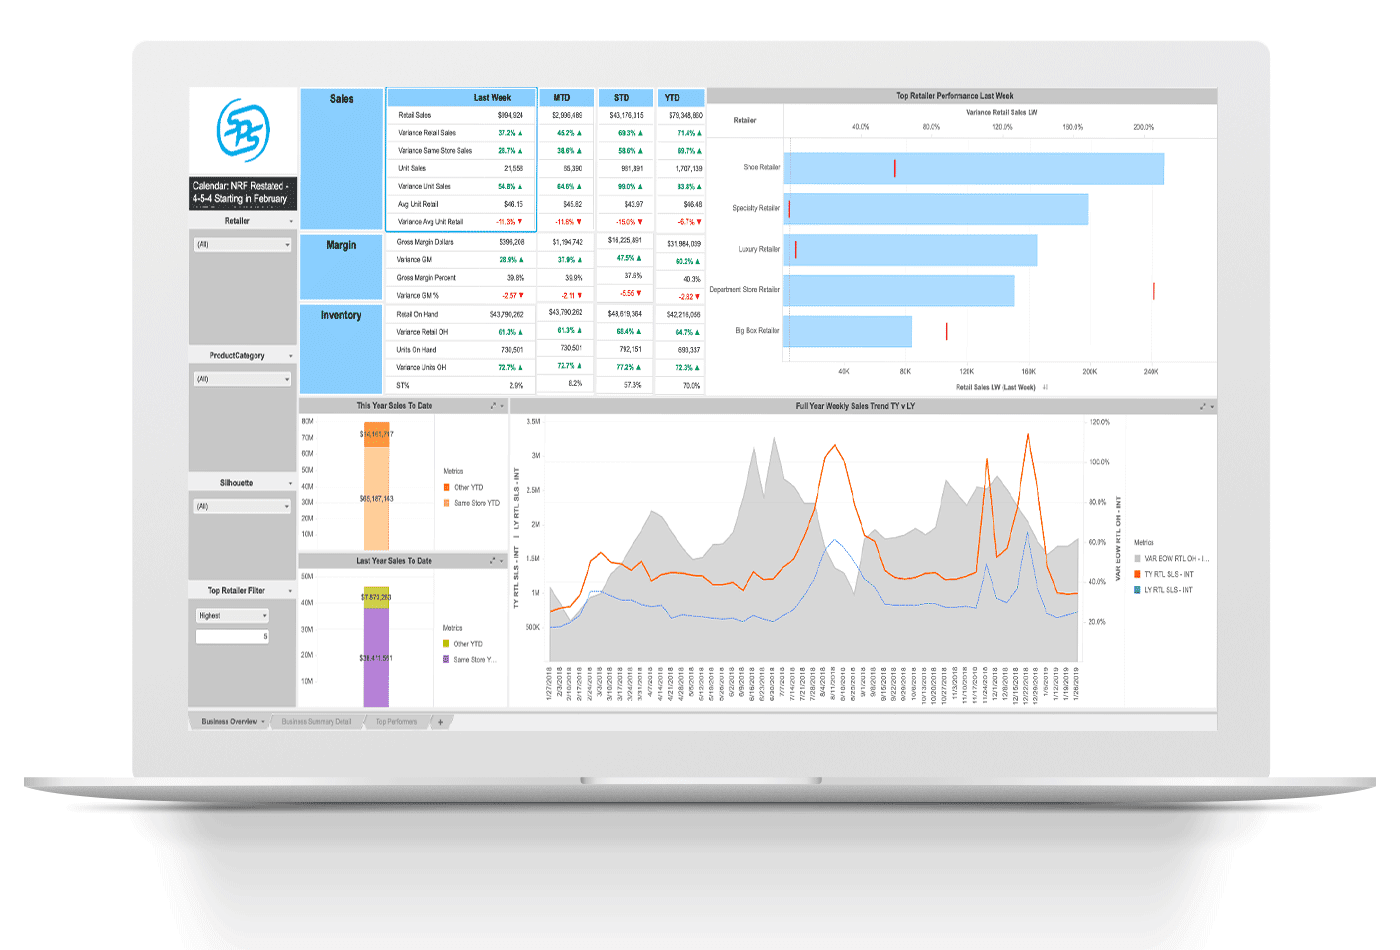 SPS Analytics has helpful dashboards that allow you to dive deep into your retail data.